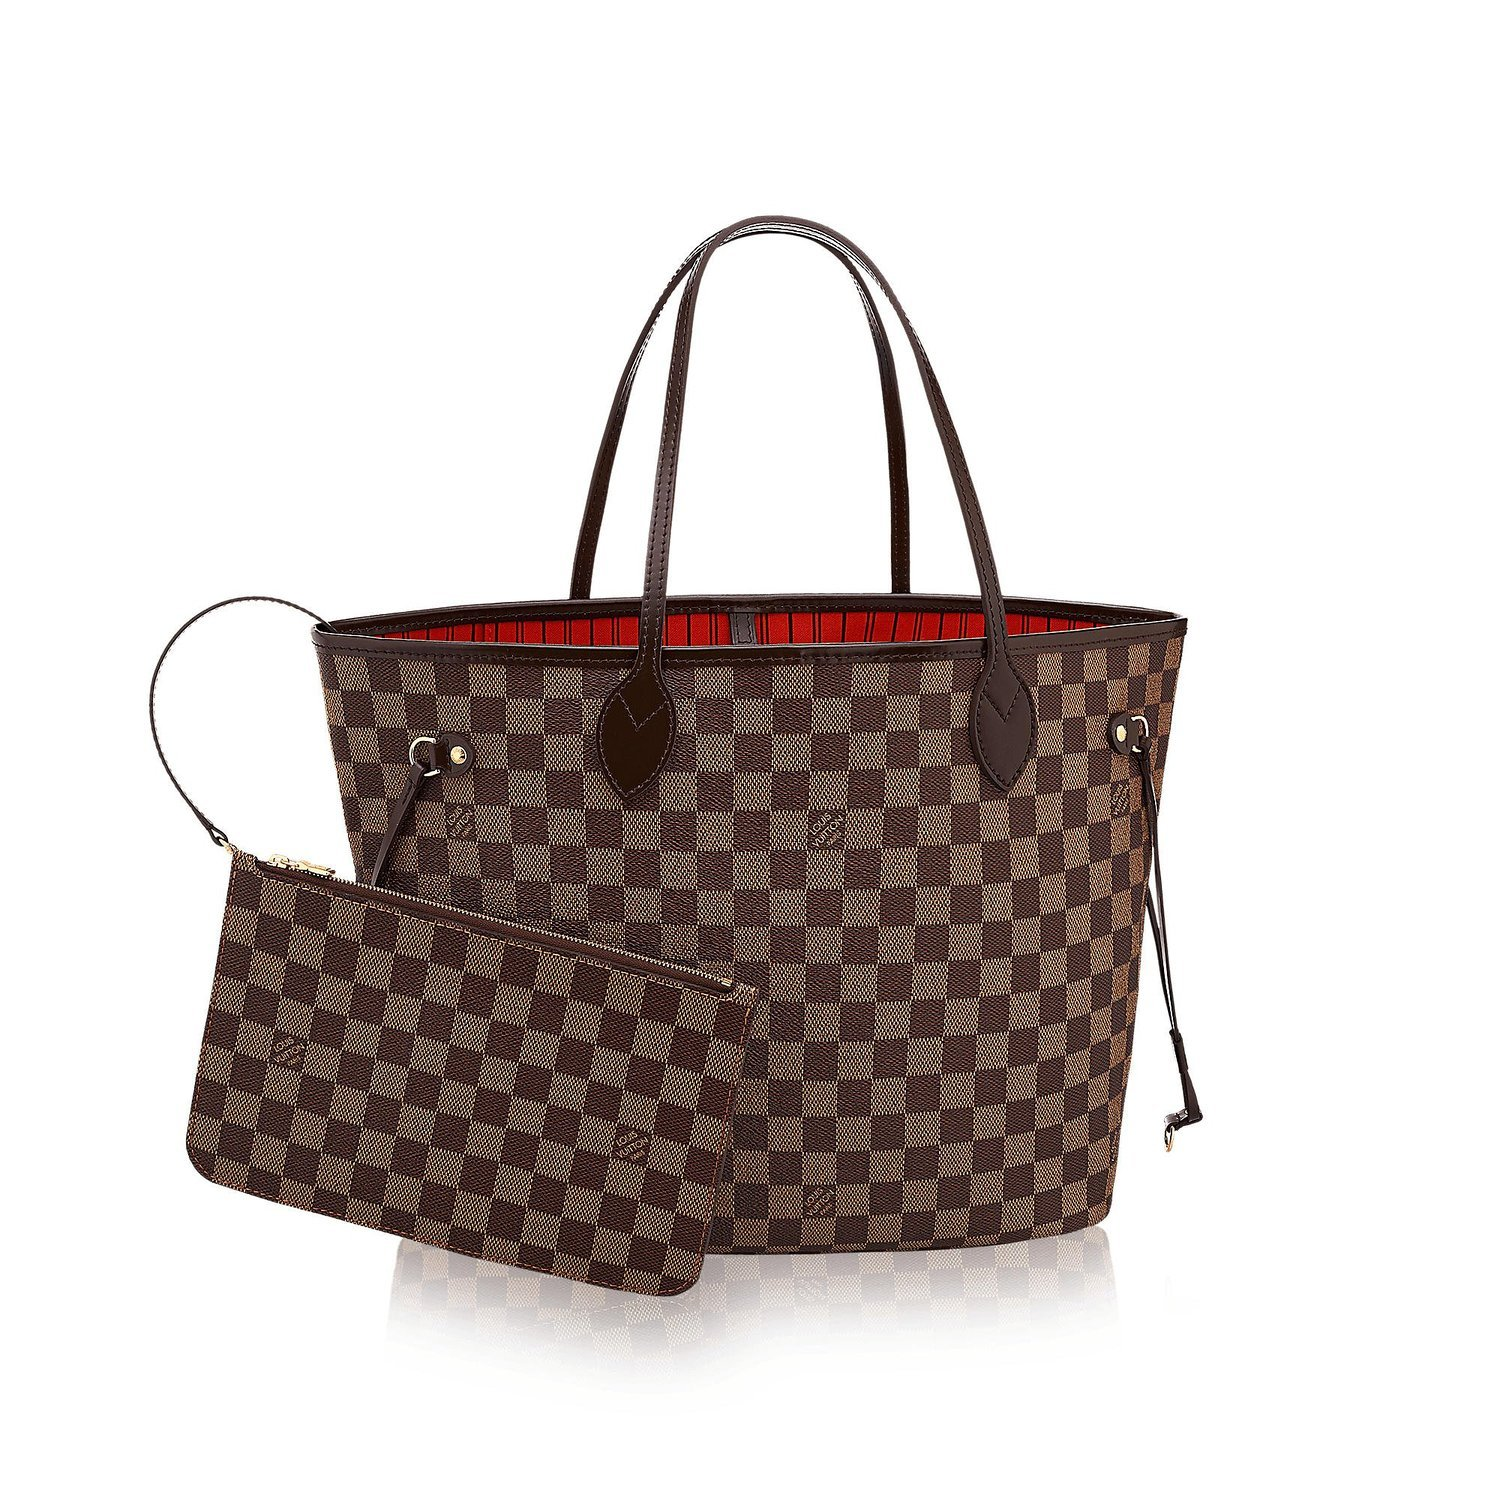 .LOUIS VUITTON Damier Ebene Canvas Neverfull MM  Handbags  Amazon.com 30e9b143c726d